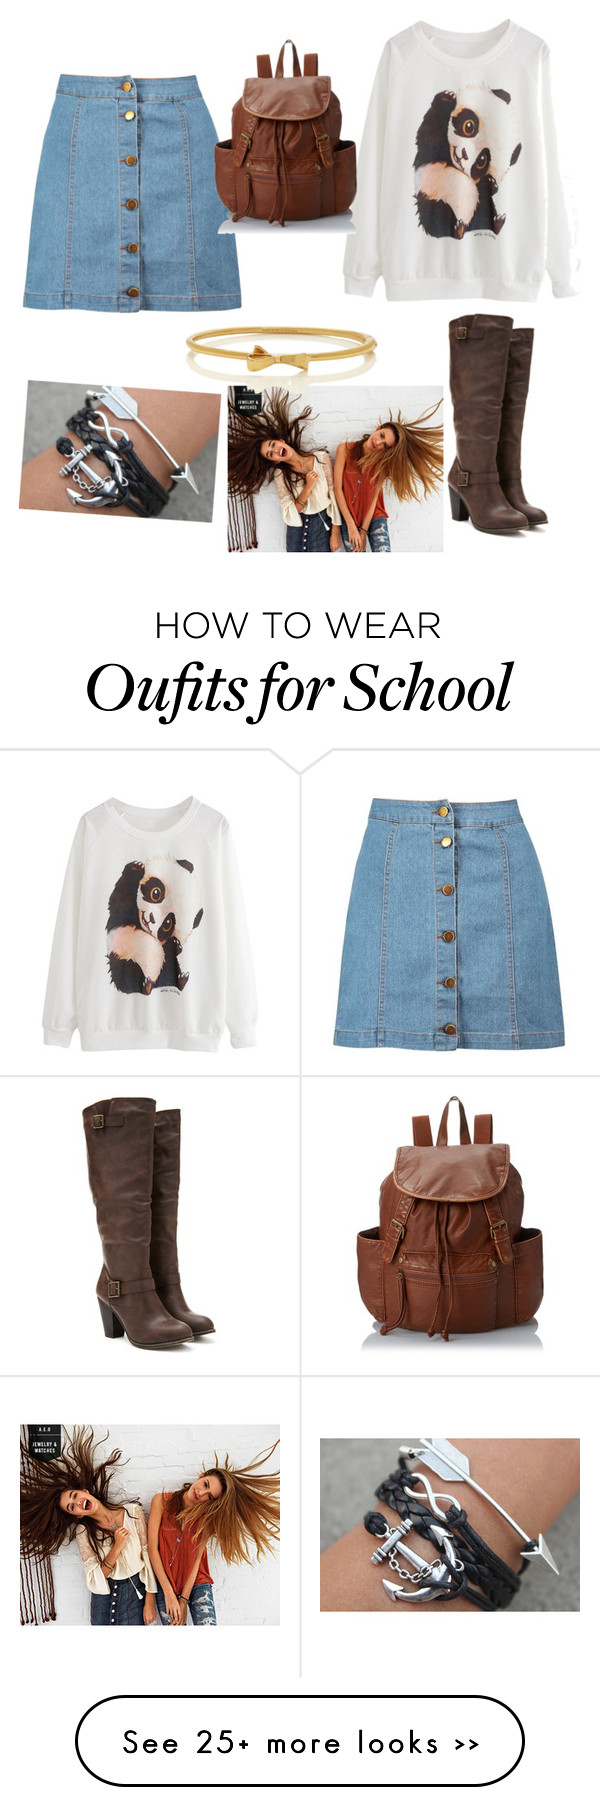 """""""school"""" by chrisfashion21 on Polyvore featuring Boohoo, Forever 21, American Eagle Outfitters, Kate Spade and LULU"""